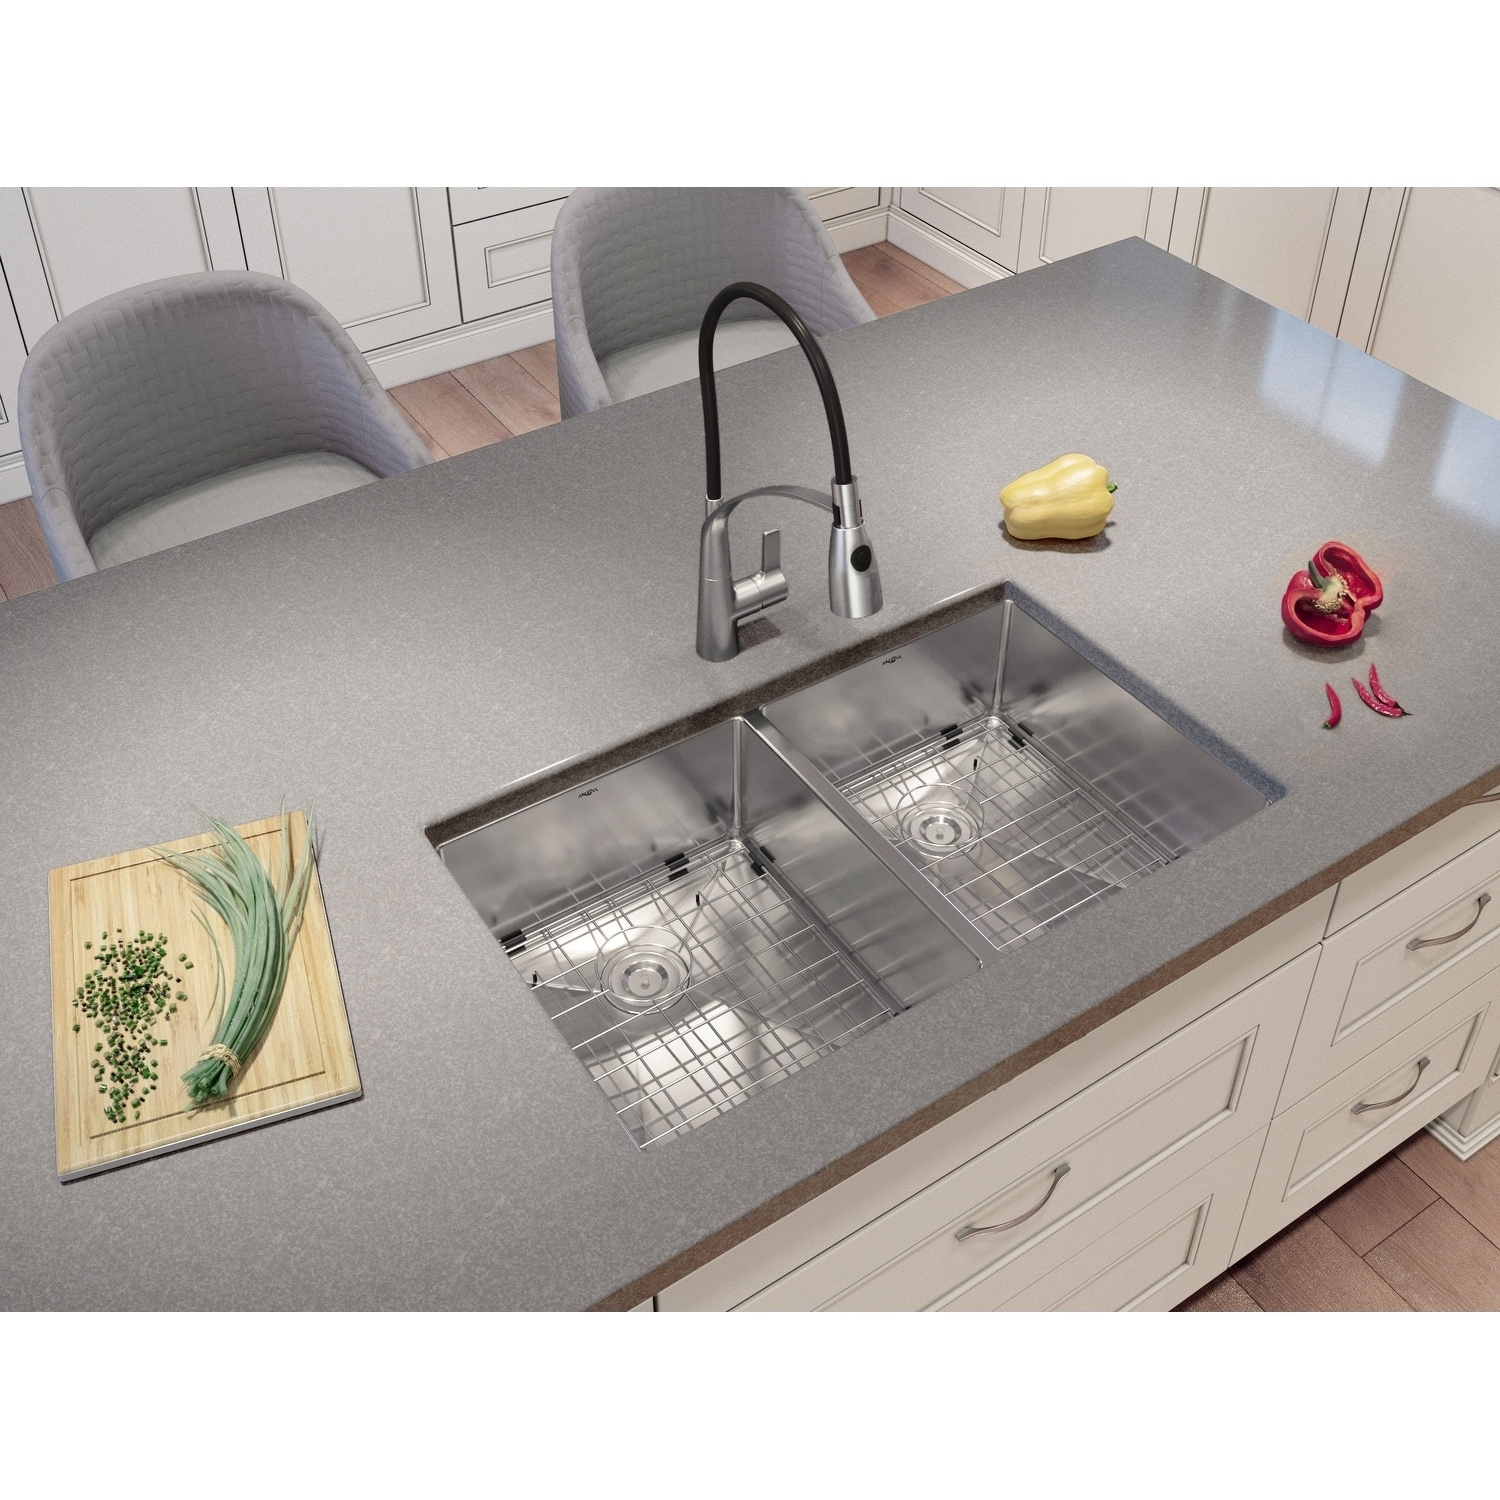 Ancona Undermount Double Handmade 28 In Sink With Palermo Faucet Combo Overstock 21214109